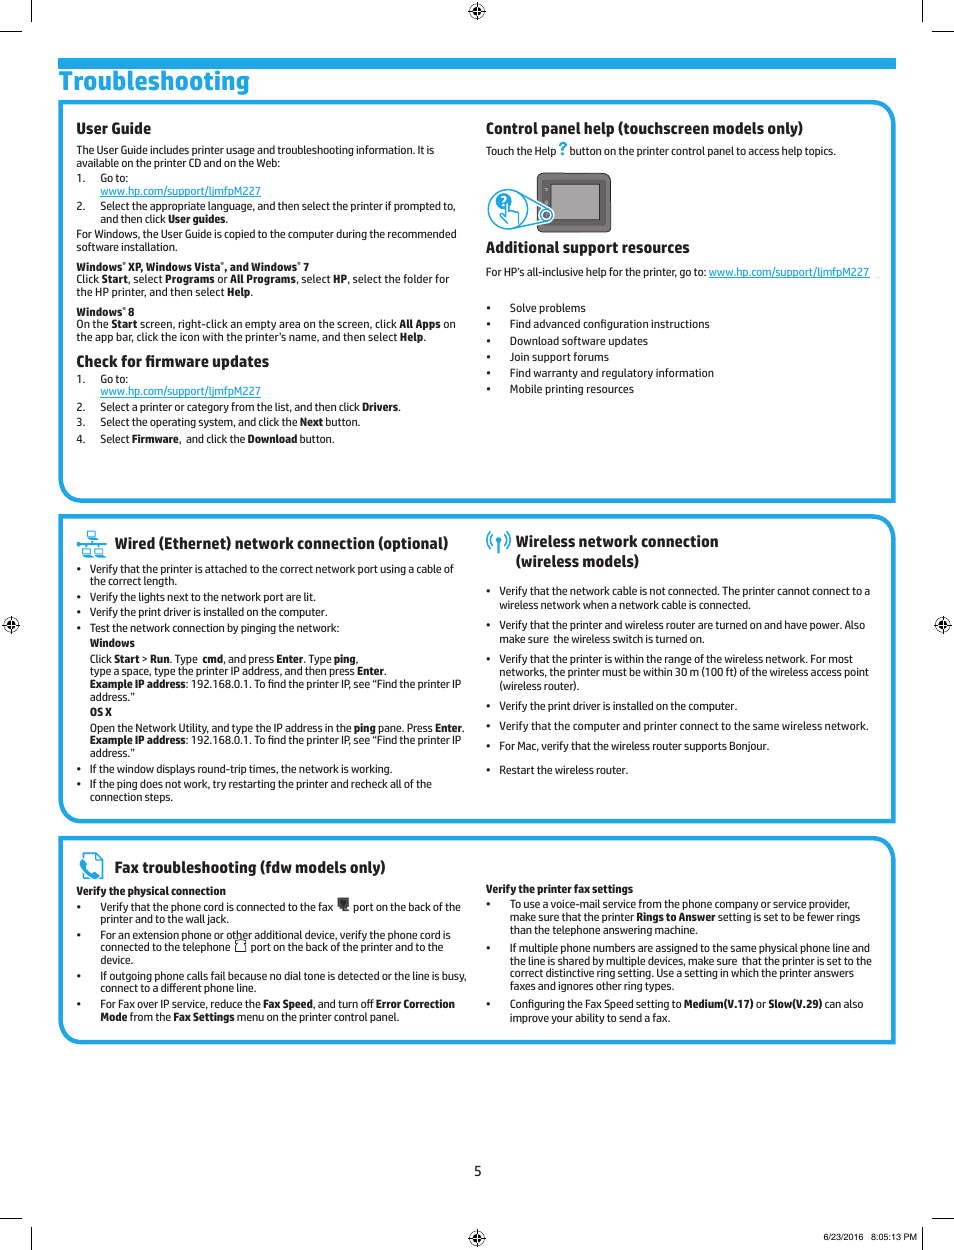 Troubleshooting, Wired (ethernet) network connection (optional), Wireless  network connection (